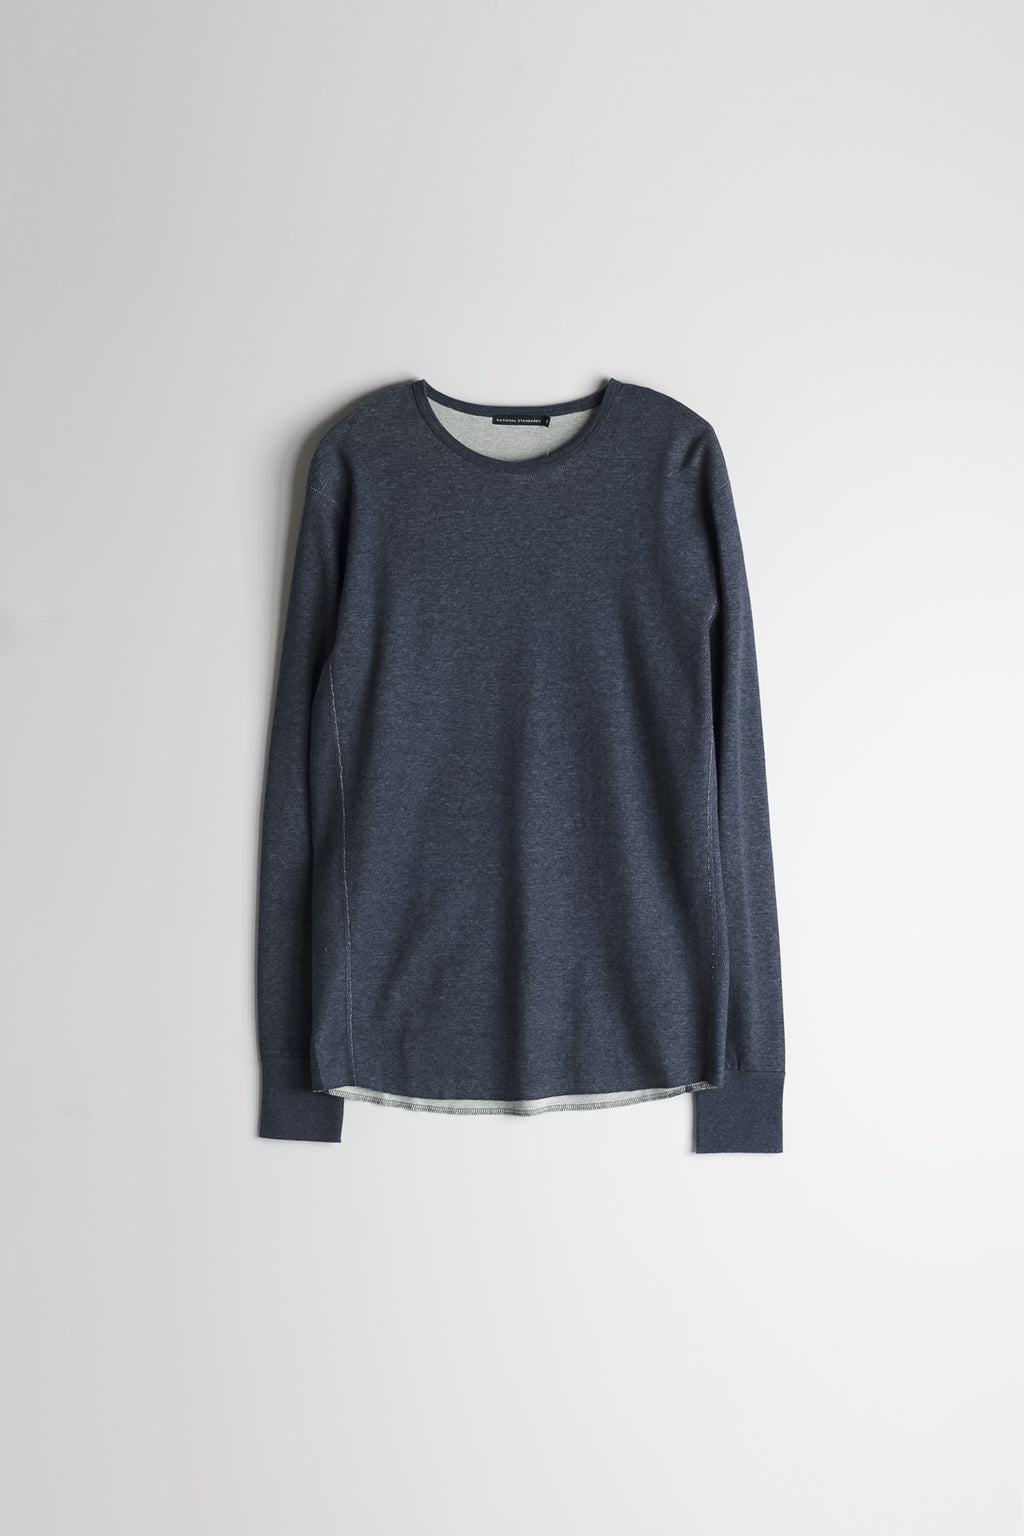 Mesh Thermal Crew in Melange Navy